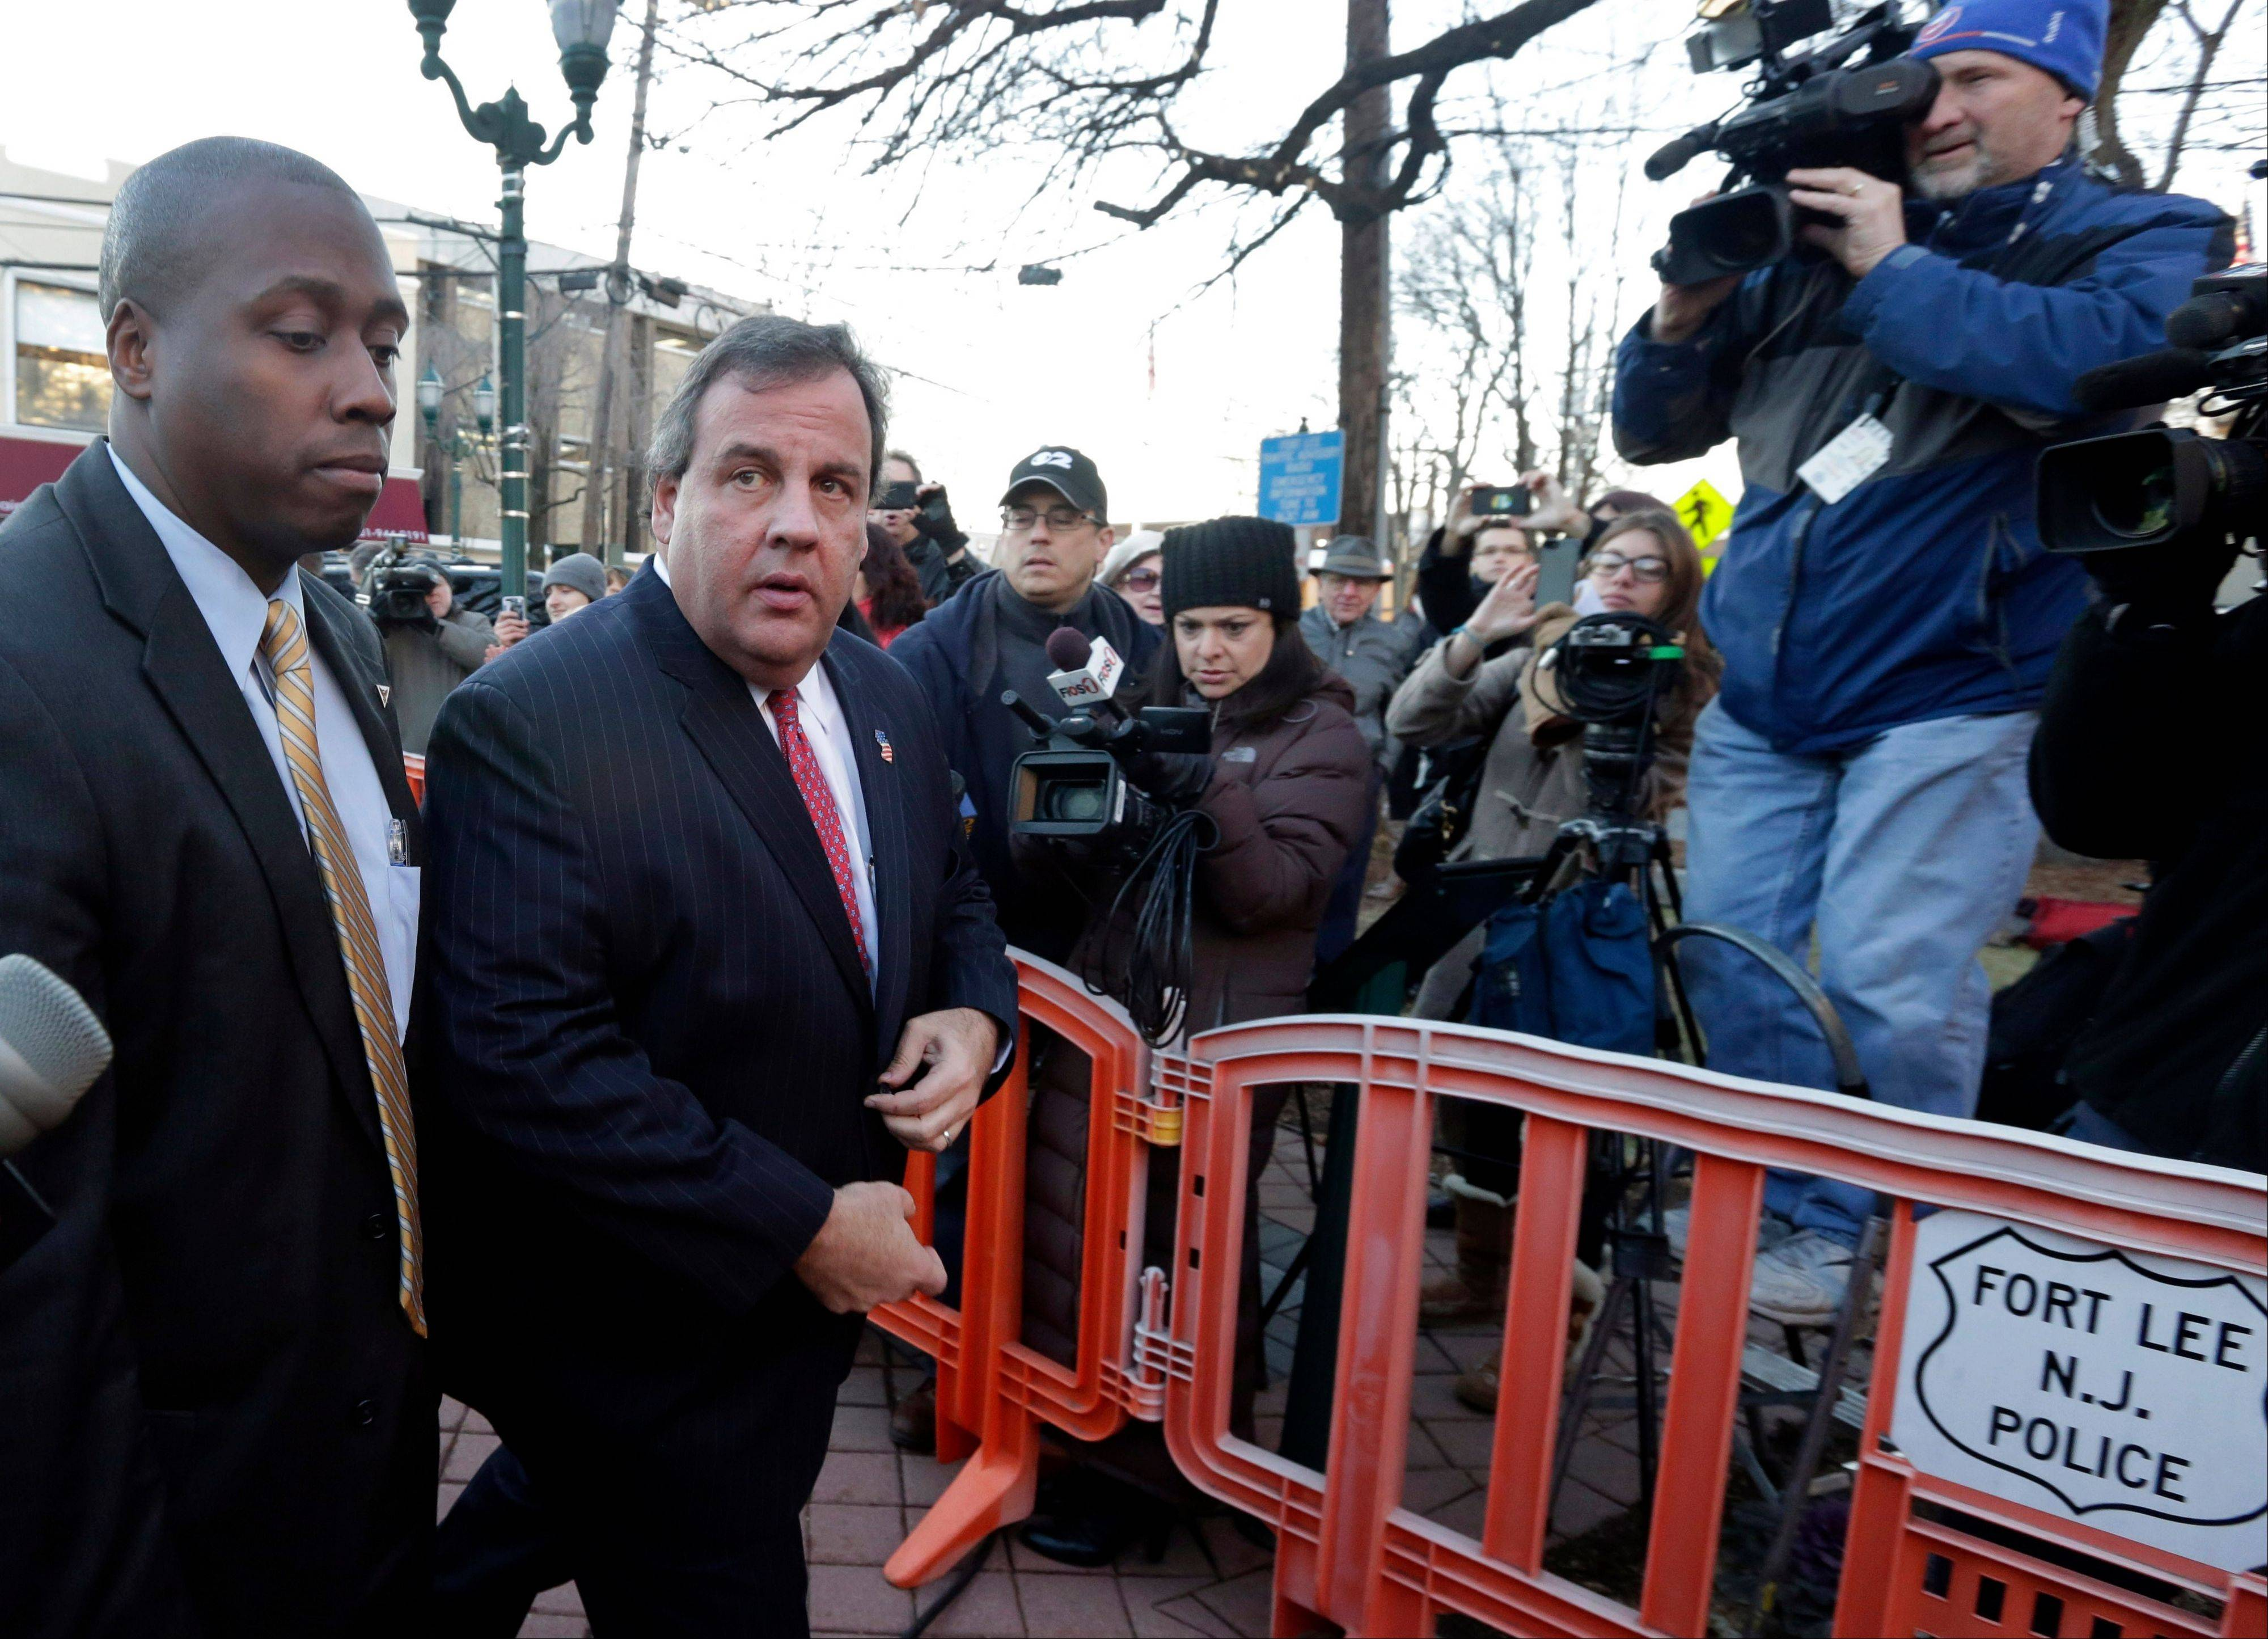 New Jersey Gov. Chris Christie traveled to Fort Lee to apologize in person to Mayor Mark Sokolich. A wounded Christie is working to move beyond the most challenging test of his political career, a traffic scandal that rocked his administration this week and threatens to tarnish his national image ahead of the next presidential contest.